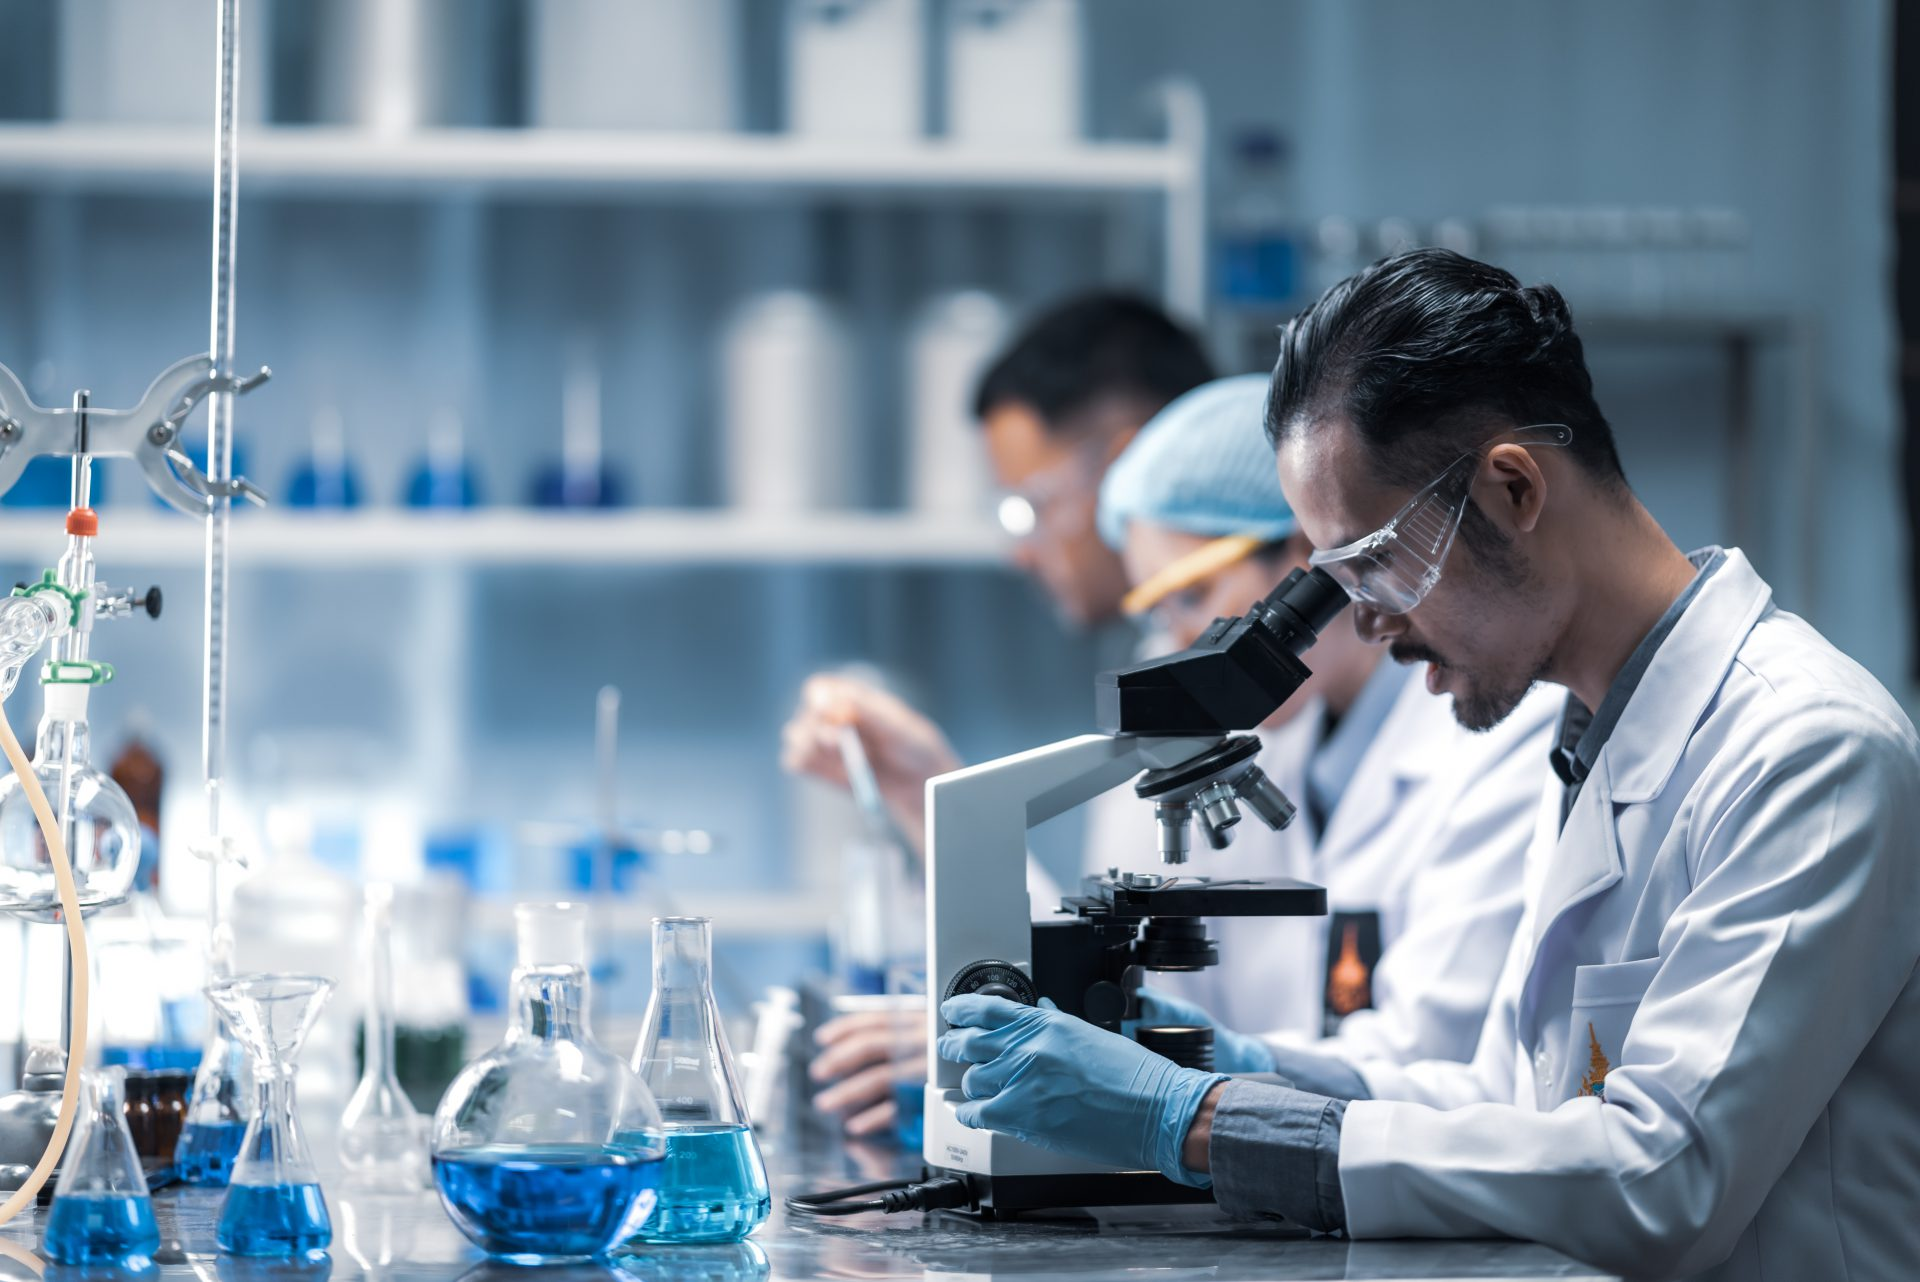 young-scientist-looking-through-microscope-laboratory-young-scientist-doing-some-research